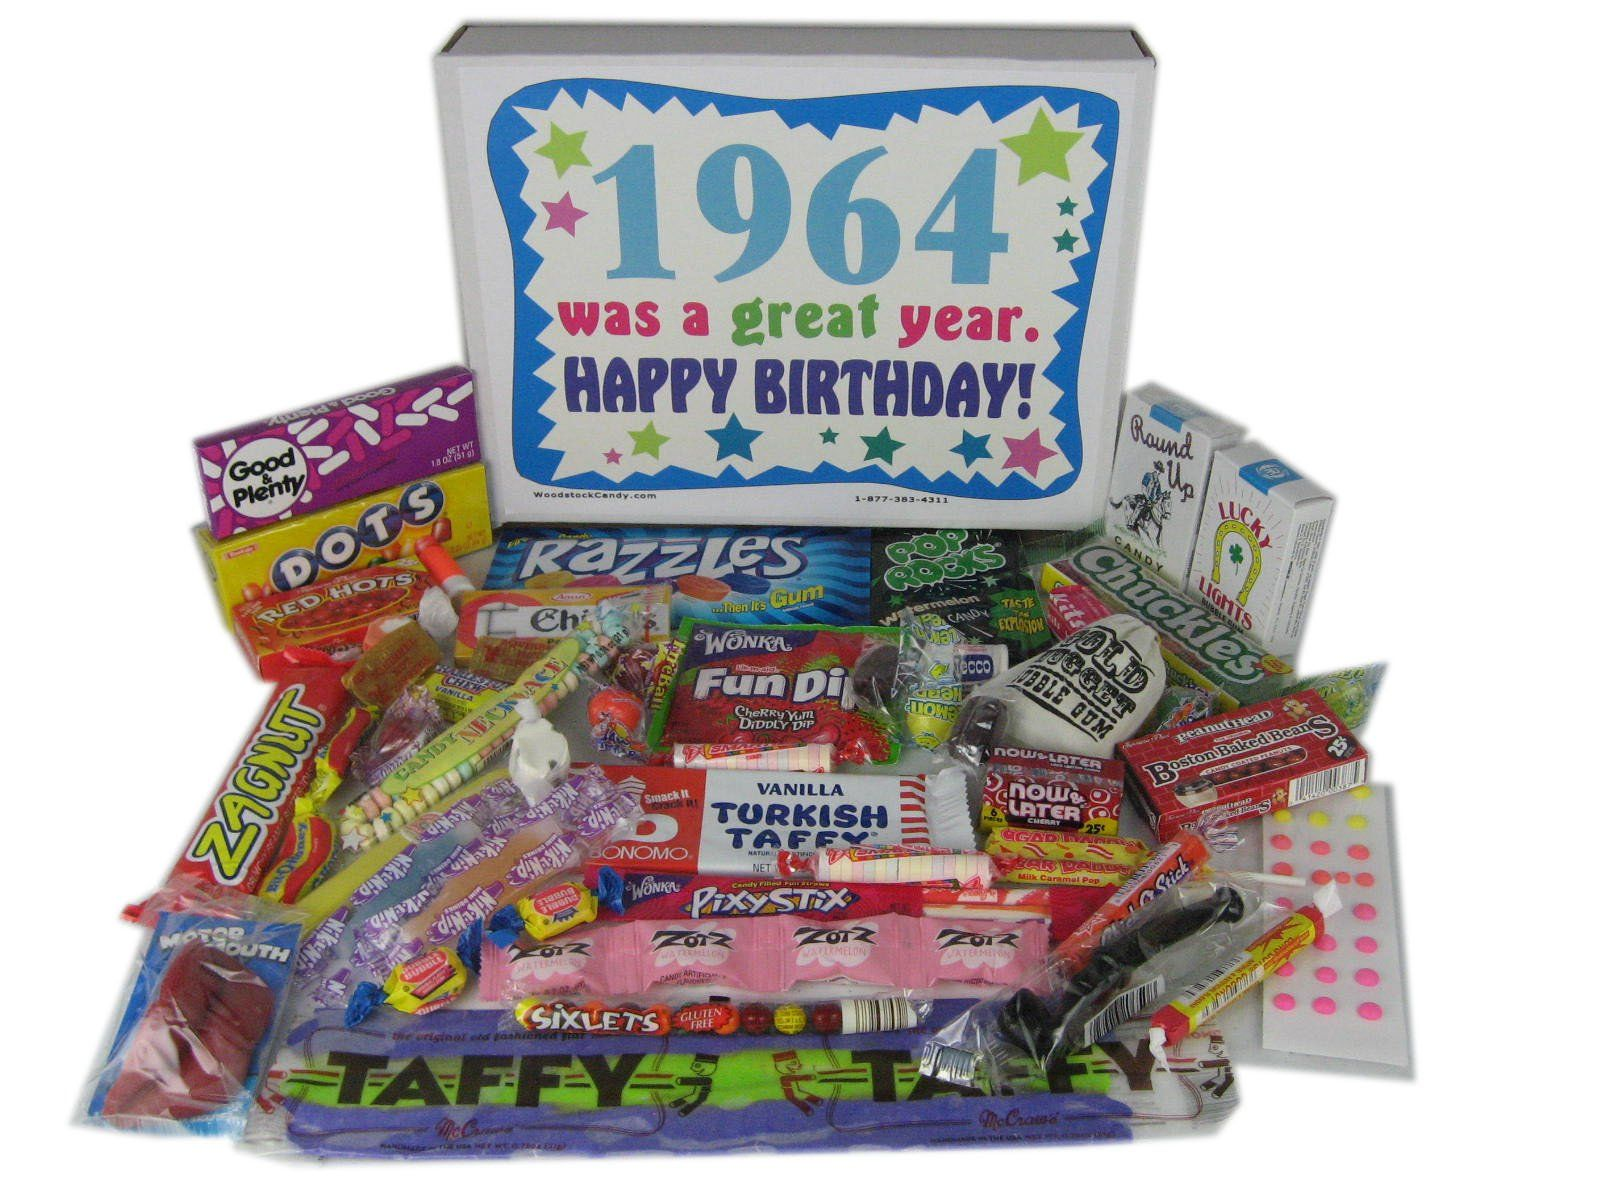 1964 50th Birthday Gift Basket Box Retro Nostalgic Candy From Childhood AmazonGrocery Gourmet Food